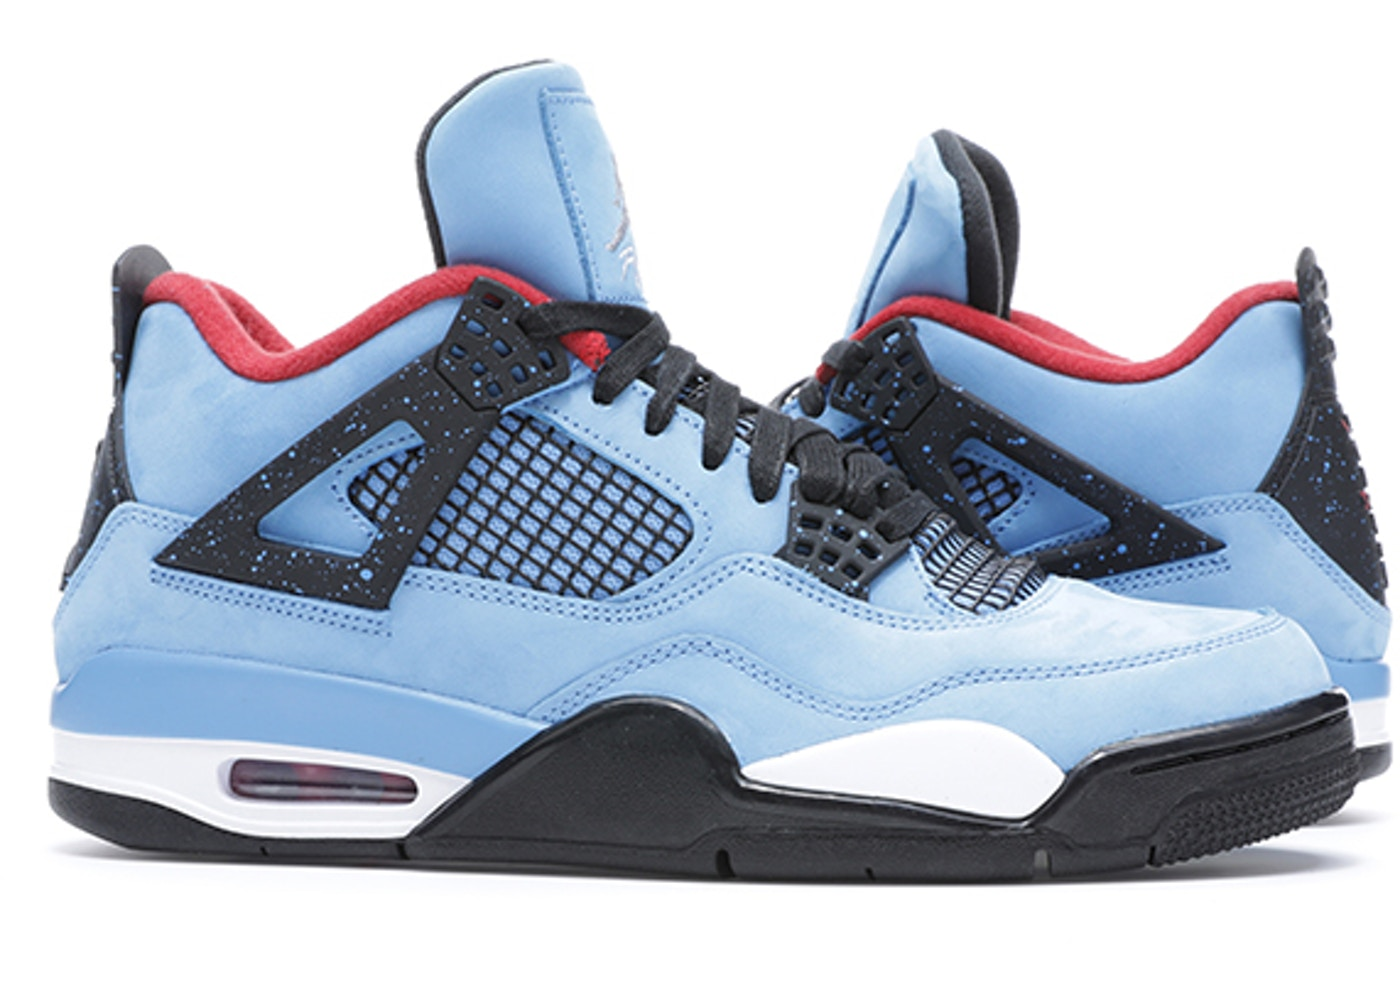 competitive price 58635 934f1 Jordan 4 Retro Travis Scott Cactus Jack. Home · sneakers · Air Jordan ...